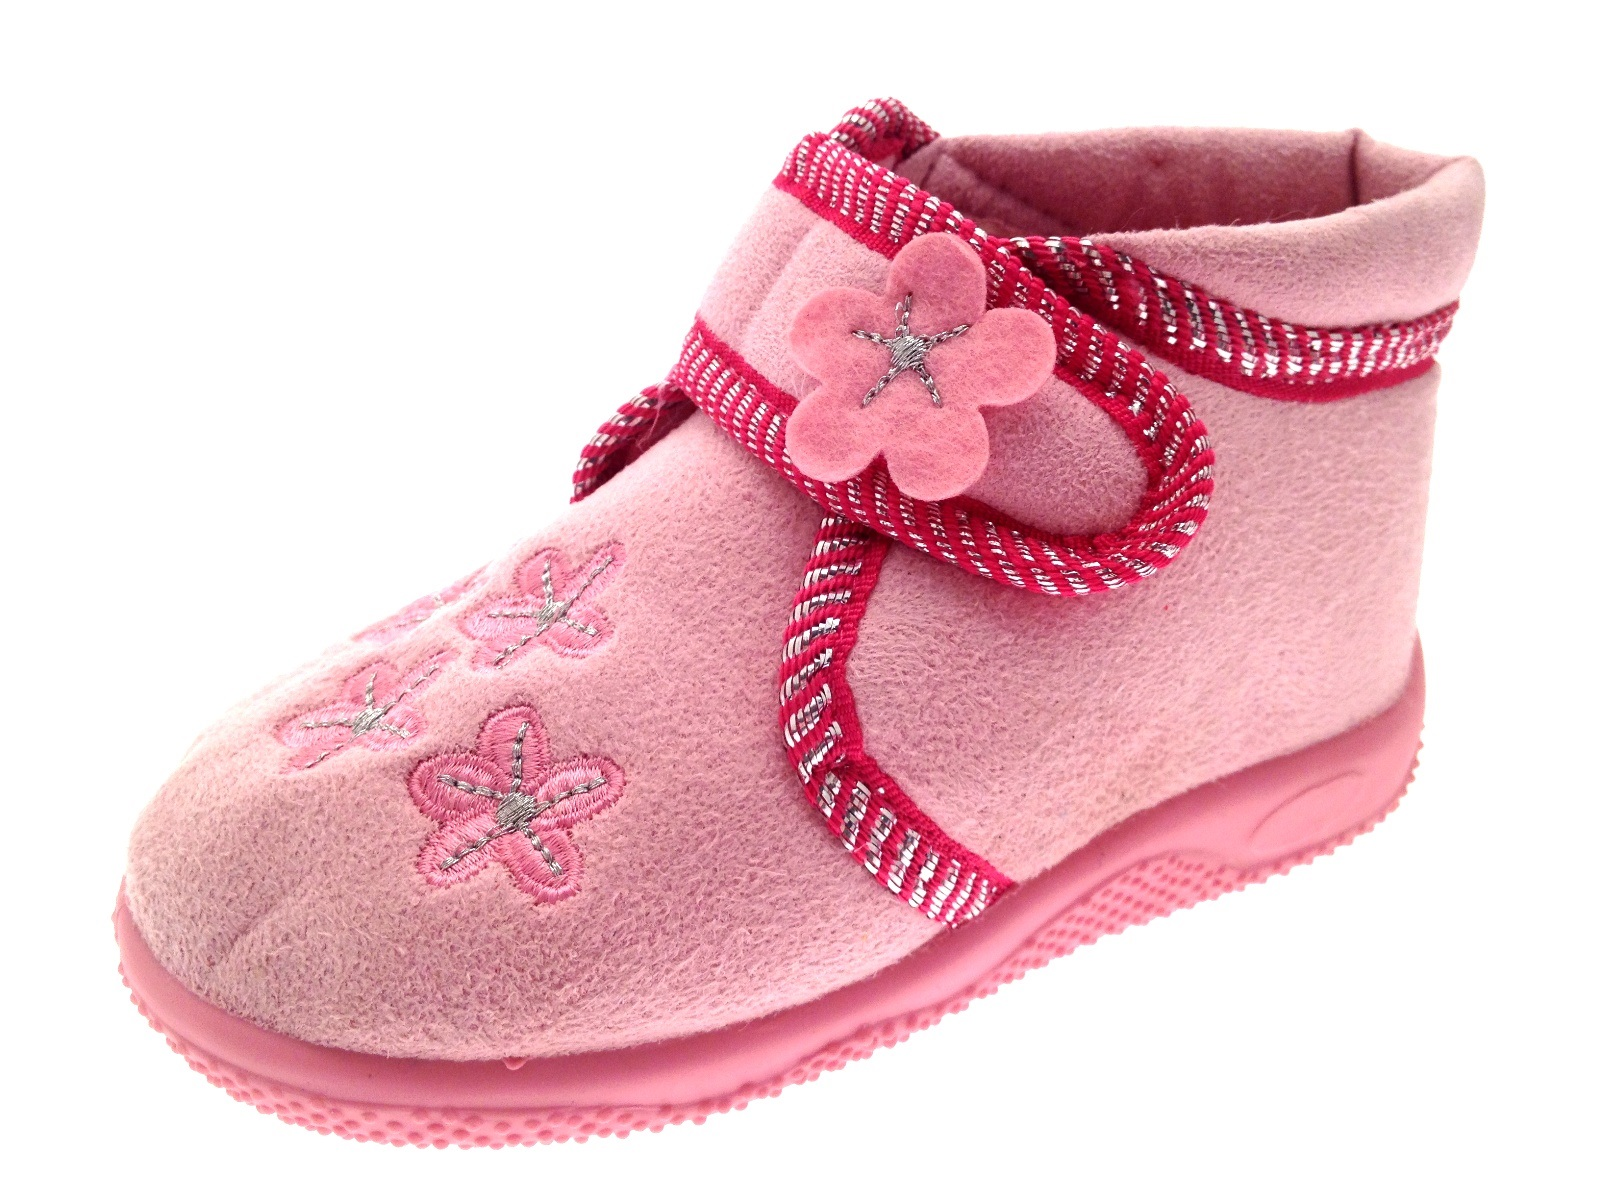 Corrective Shoes For Babies